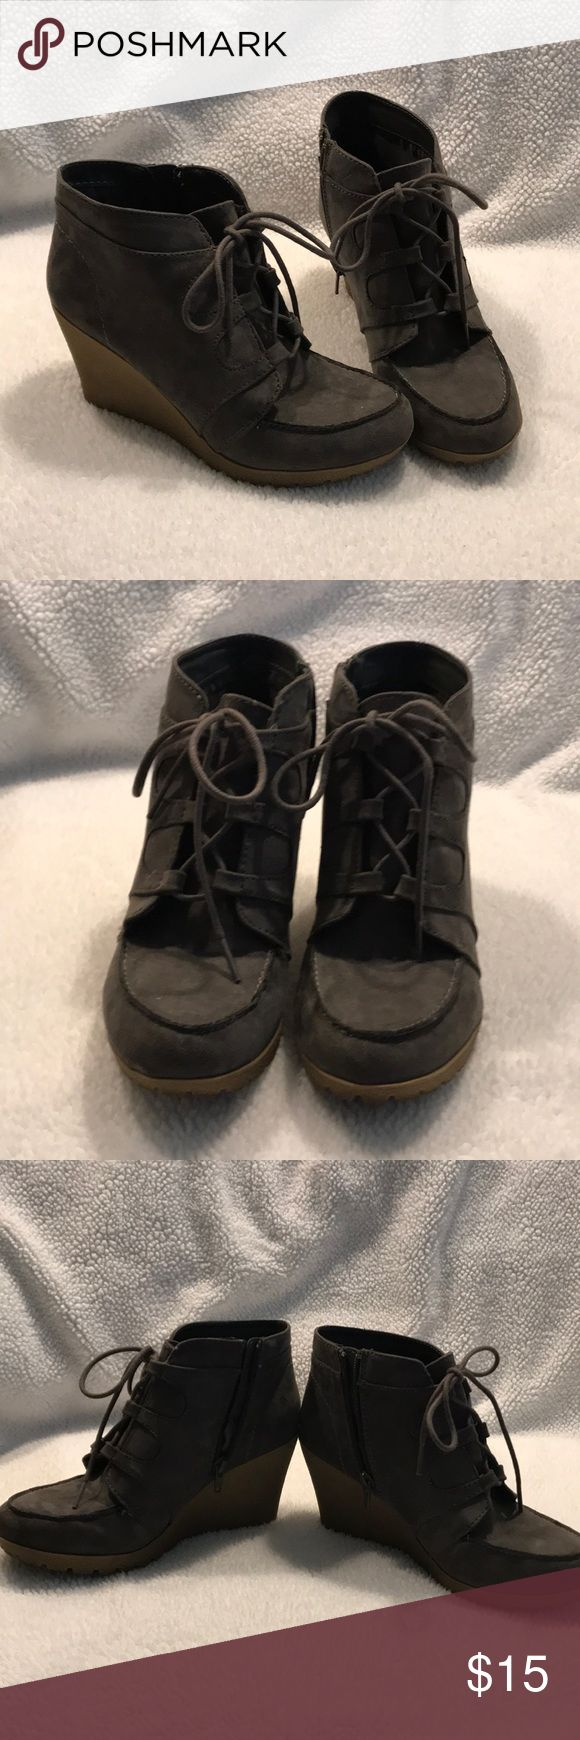 """Gray wedge heels Excellent used condition lace up wedges Zipper on side 3"""" heel Maurices Shoes Wedges"""